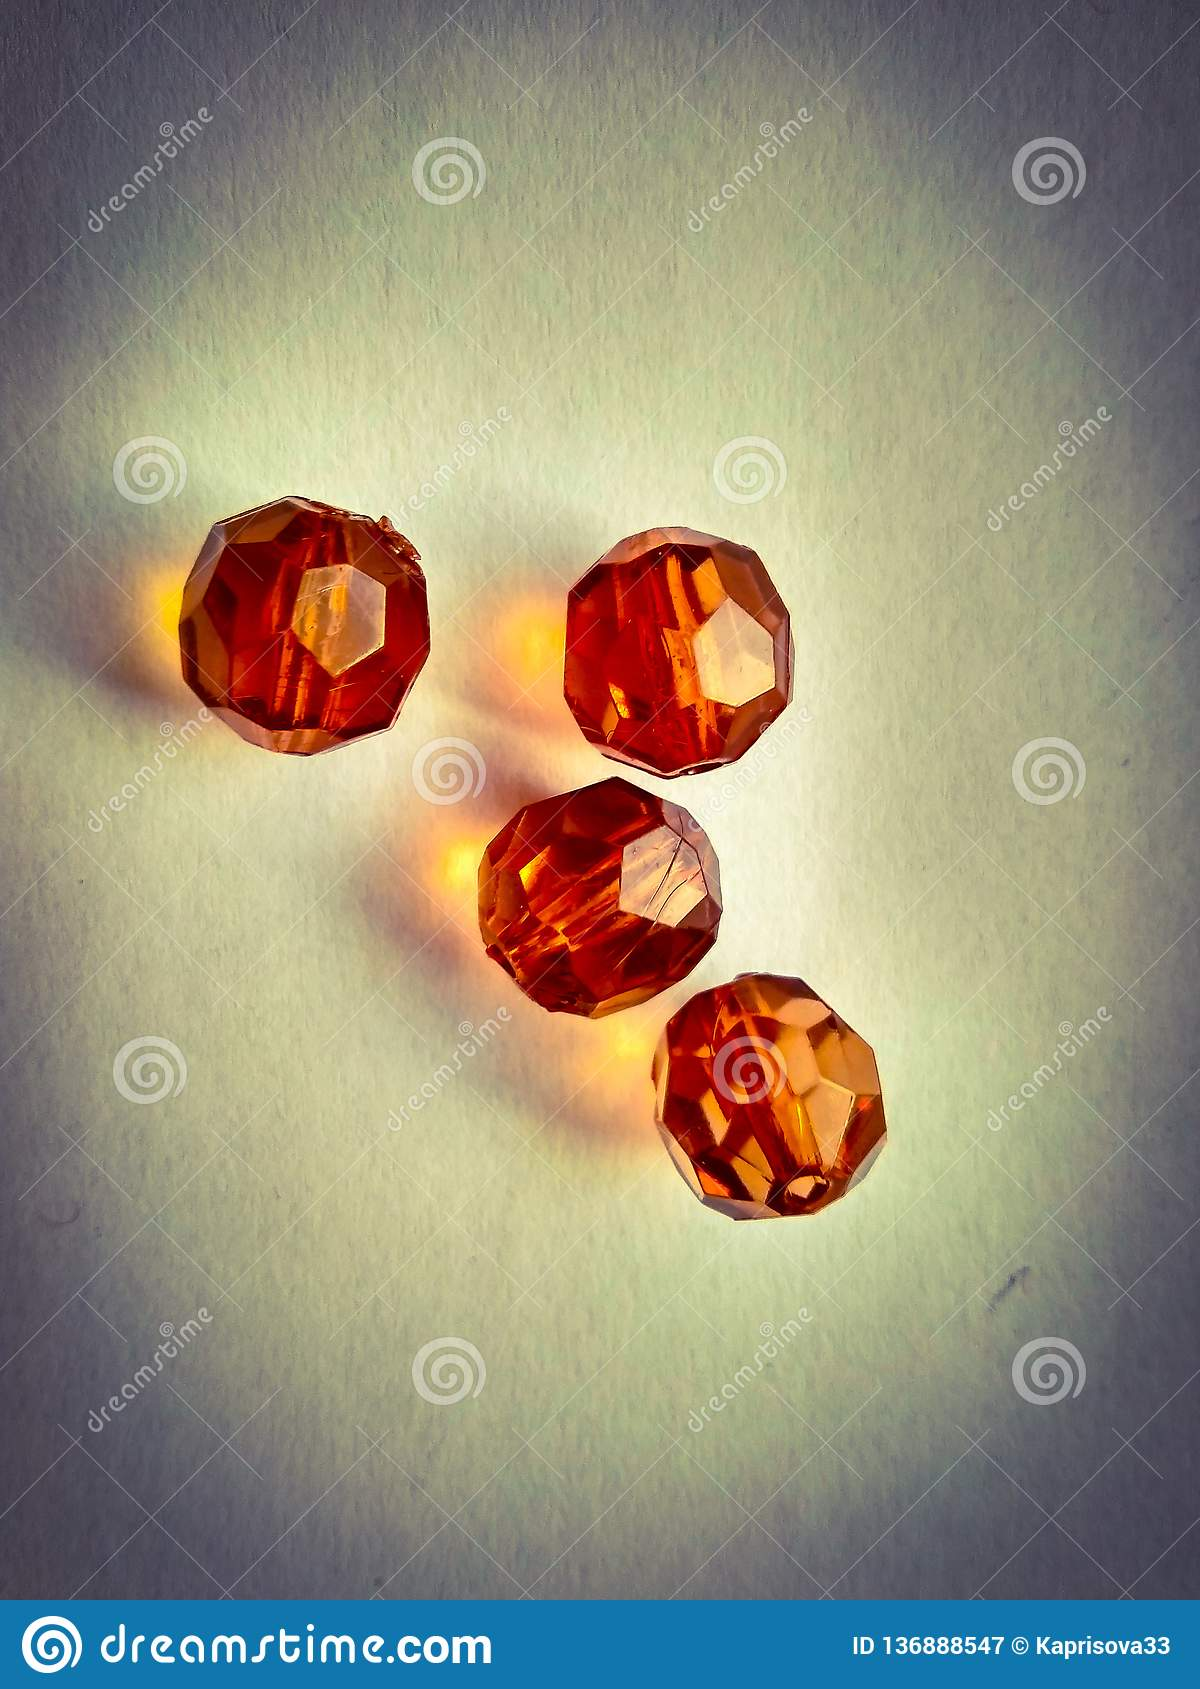 Four faceted beads